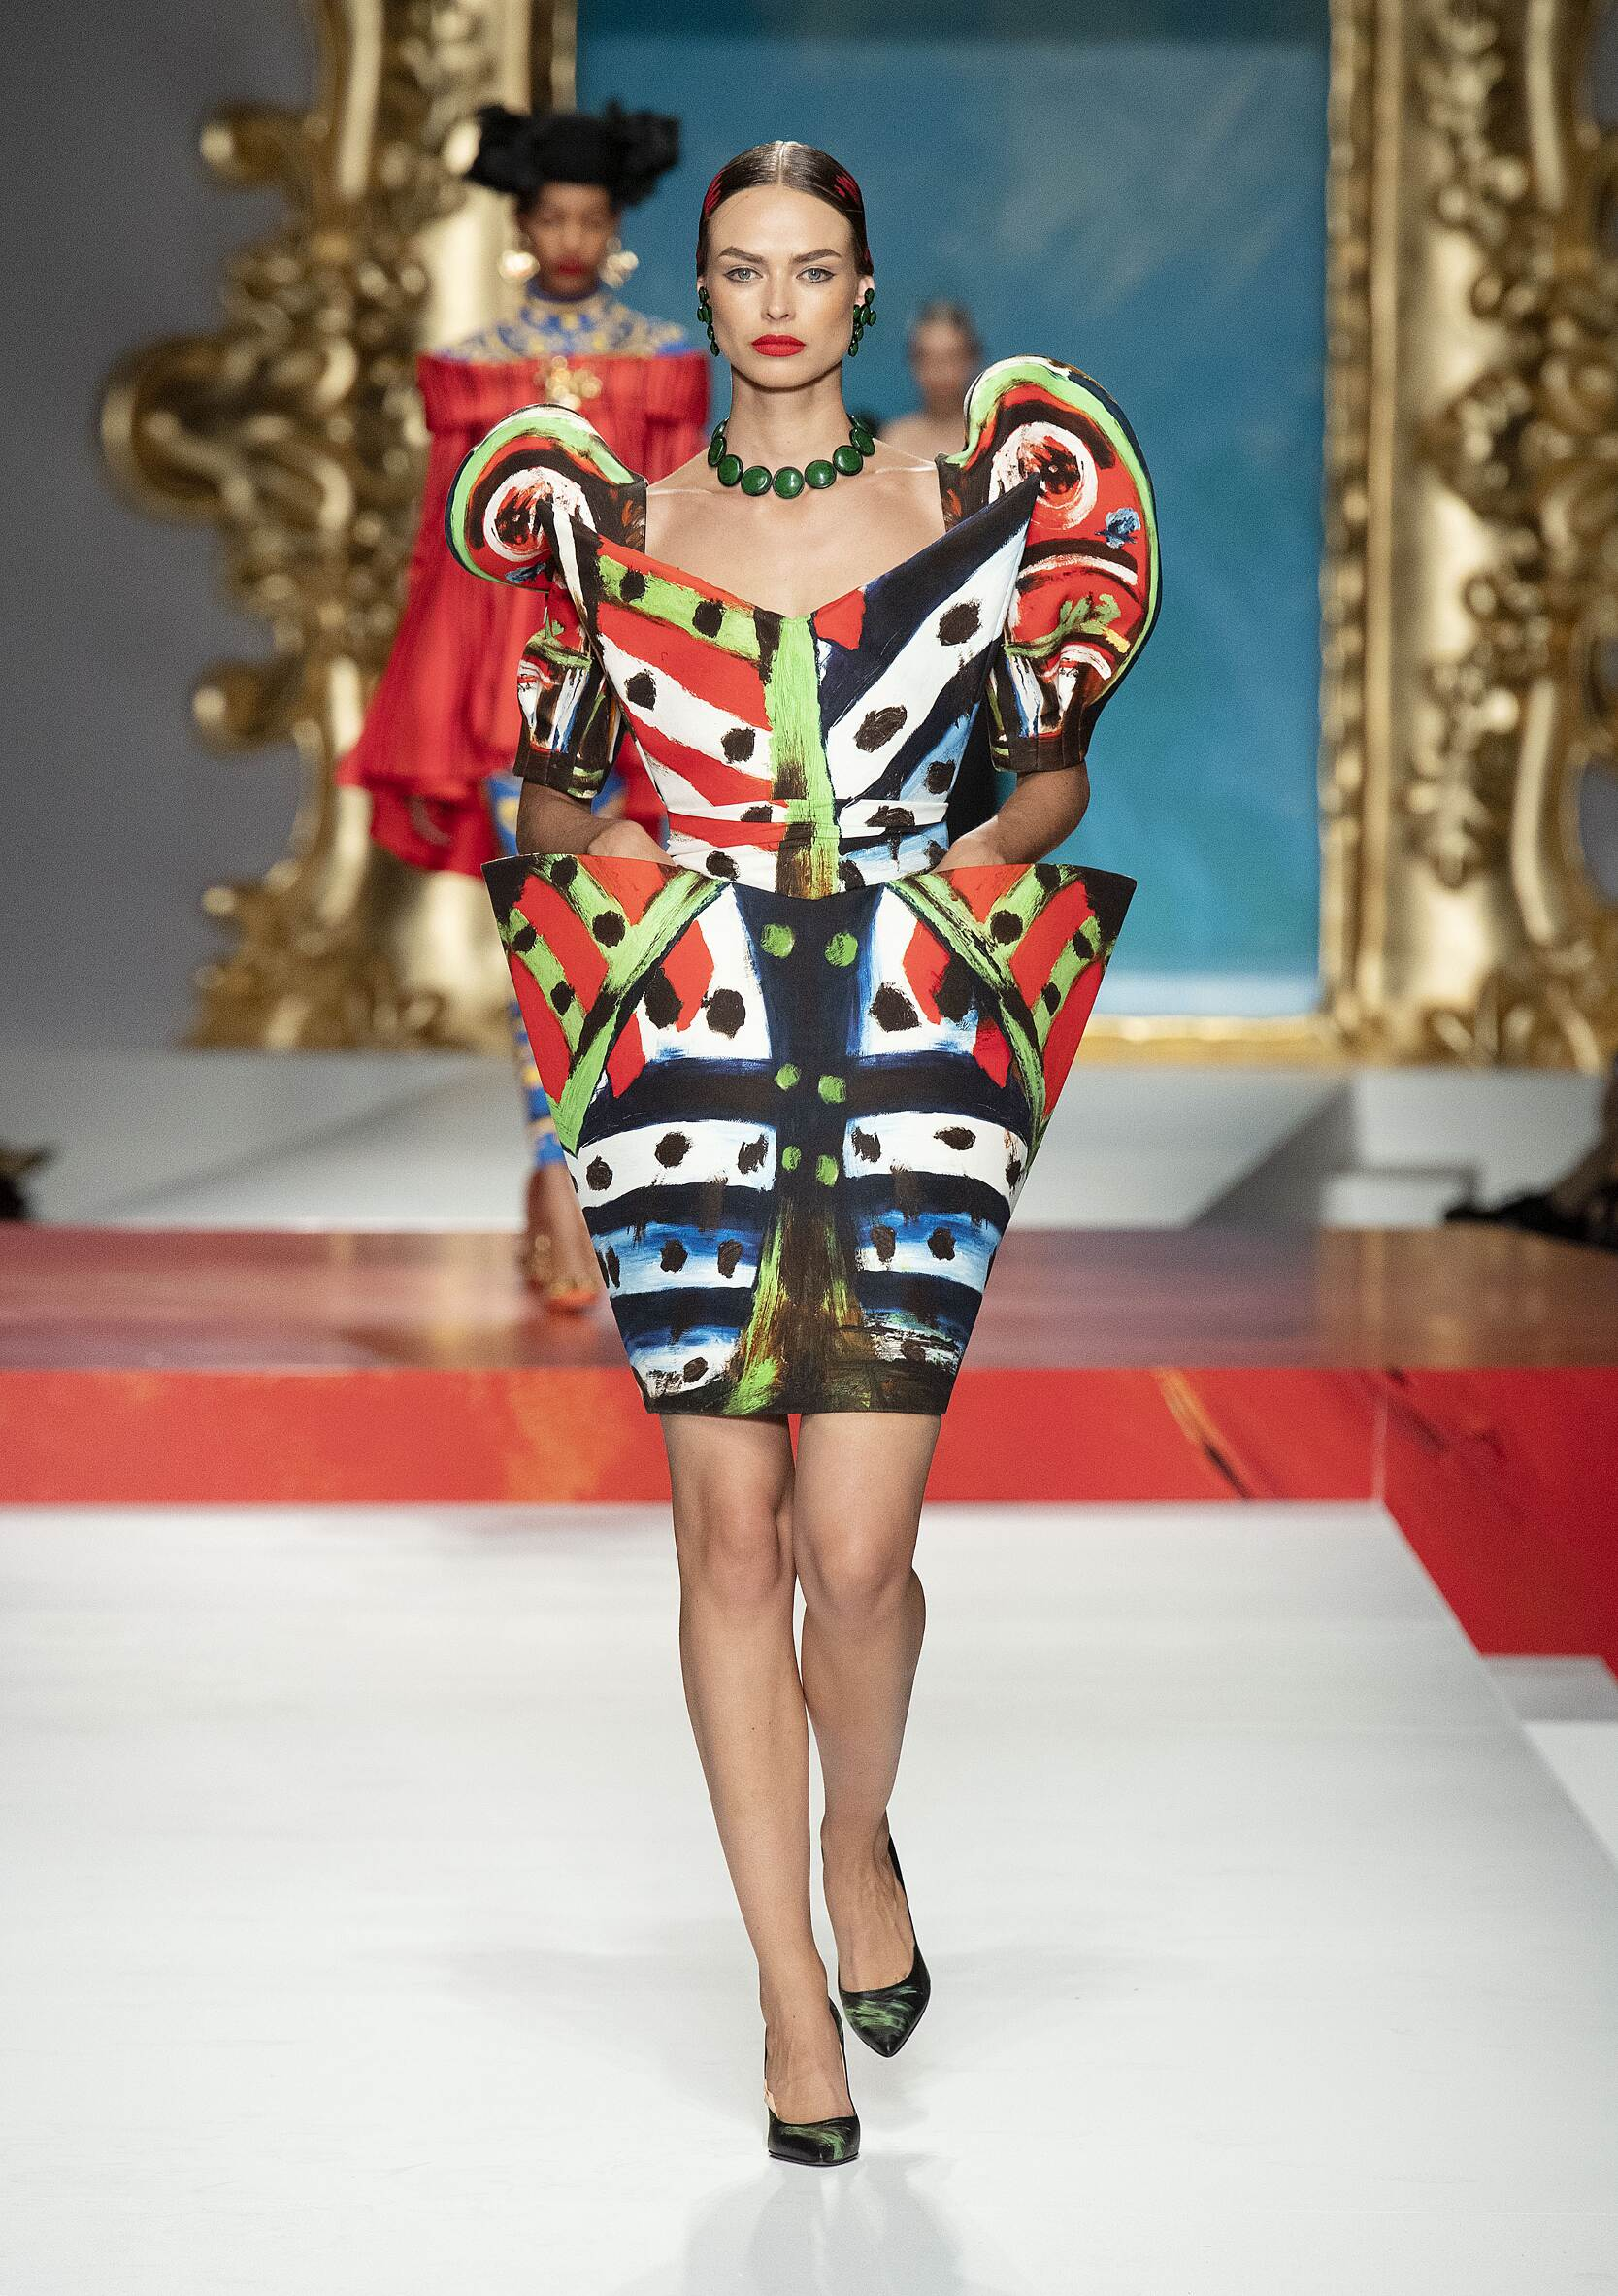 Moschino #LadyLuxuryDesigns | My favorite styles